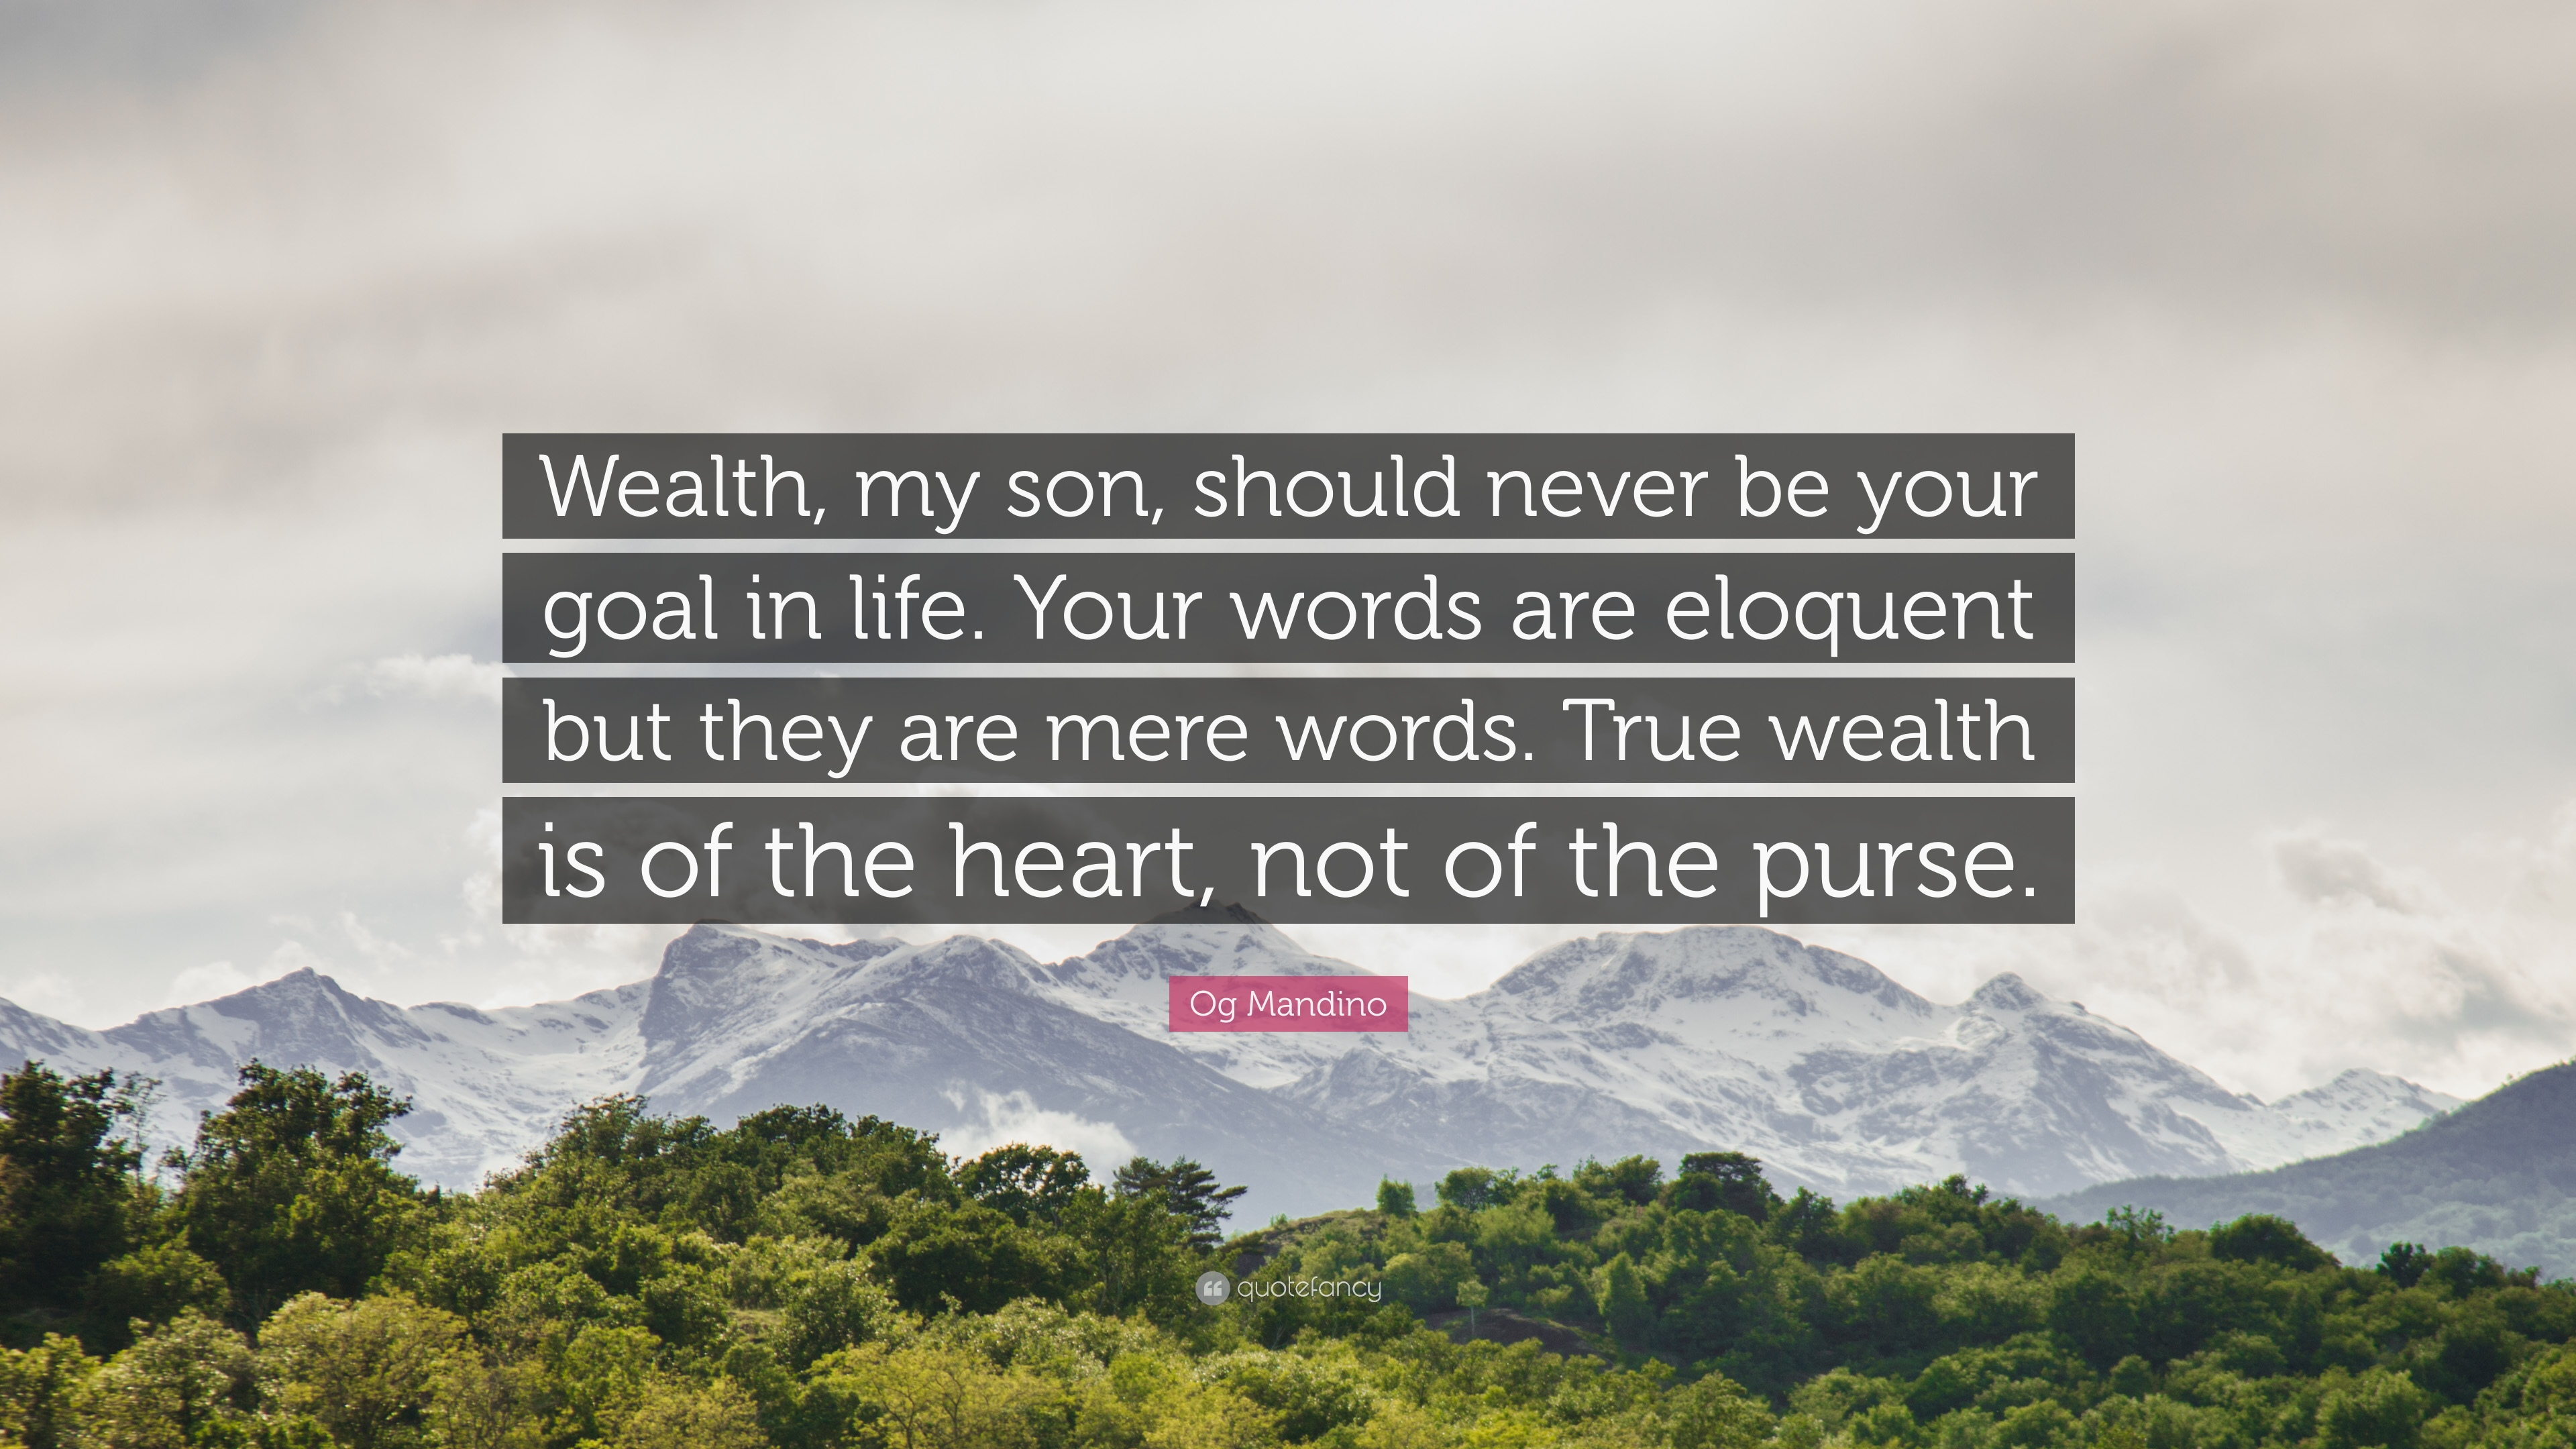 og mandino quote wealth my son should never be your goal in og mandino quote wealth my son should never be your goal in